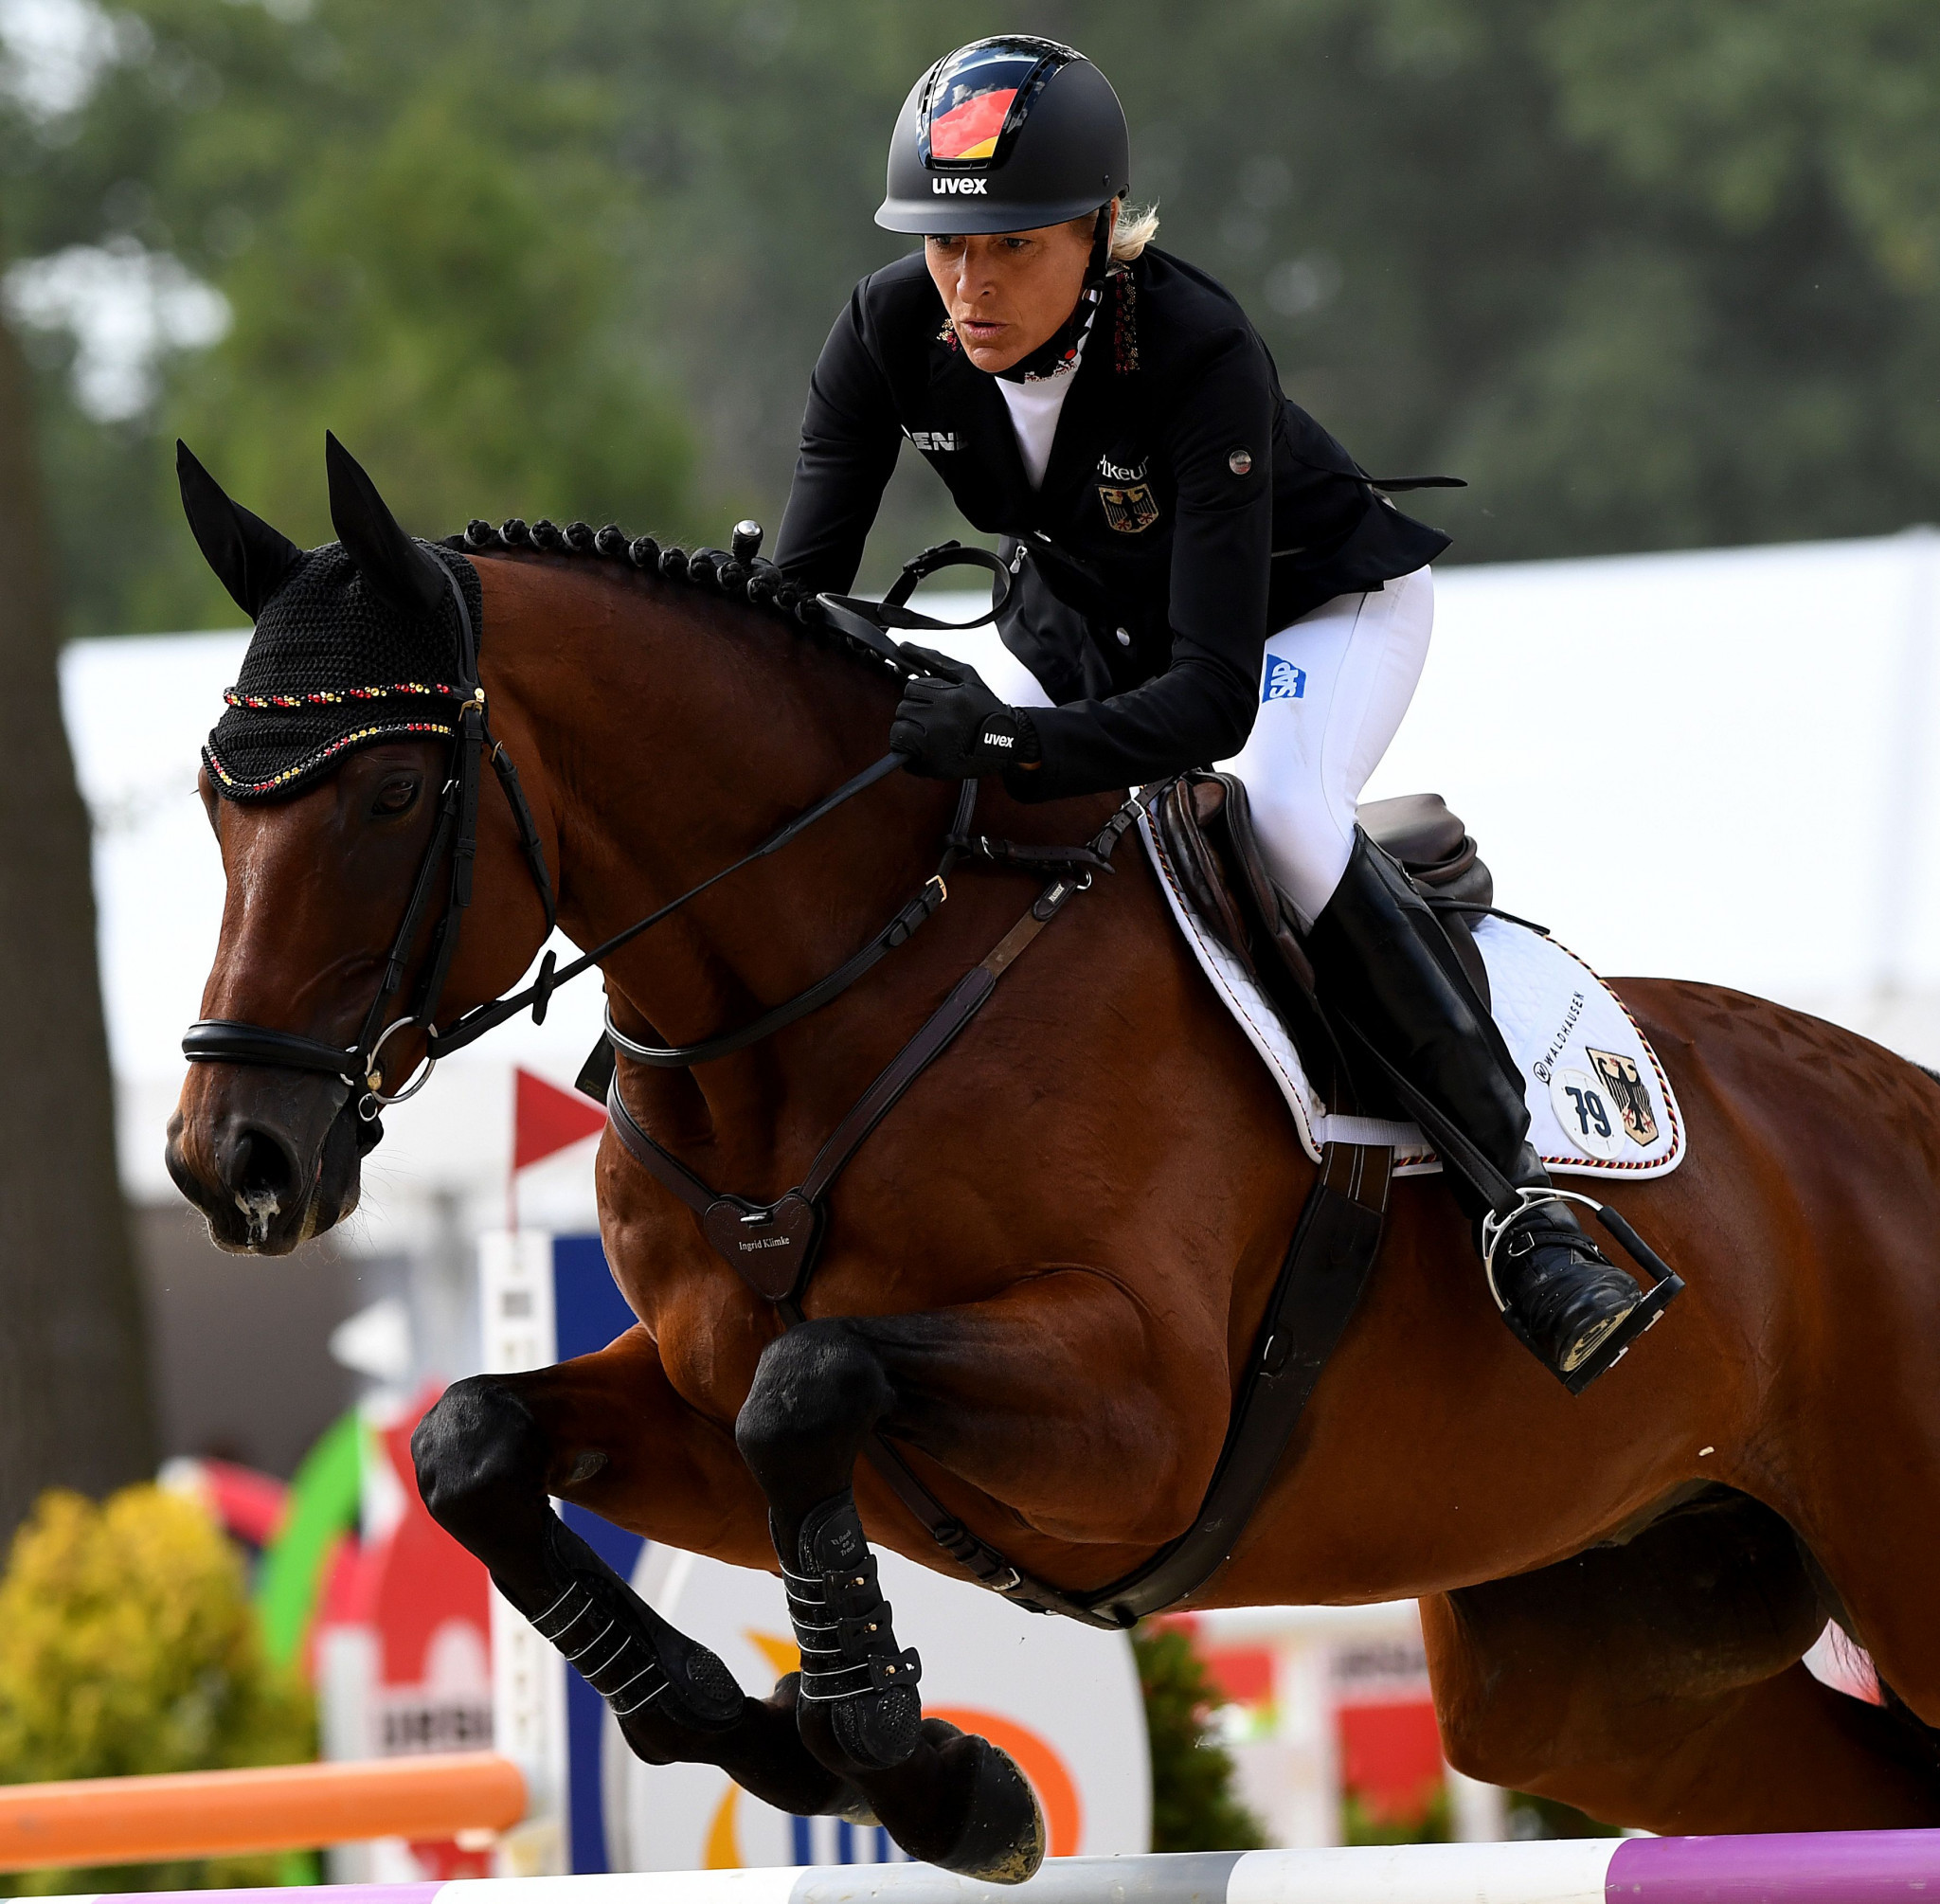 Germany look to catch Sweden in third leg of FEI Eventing Nations League